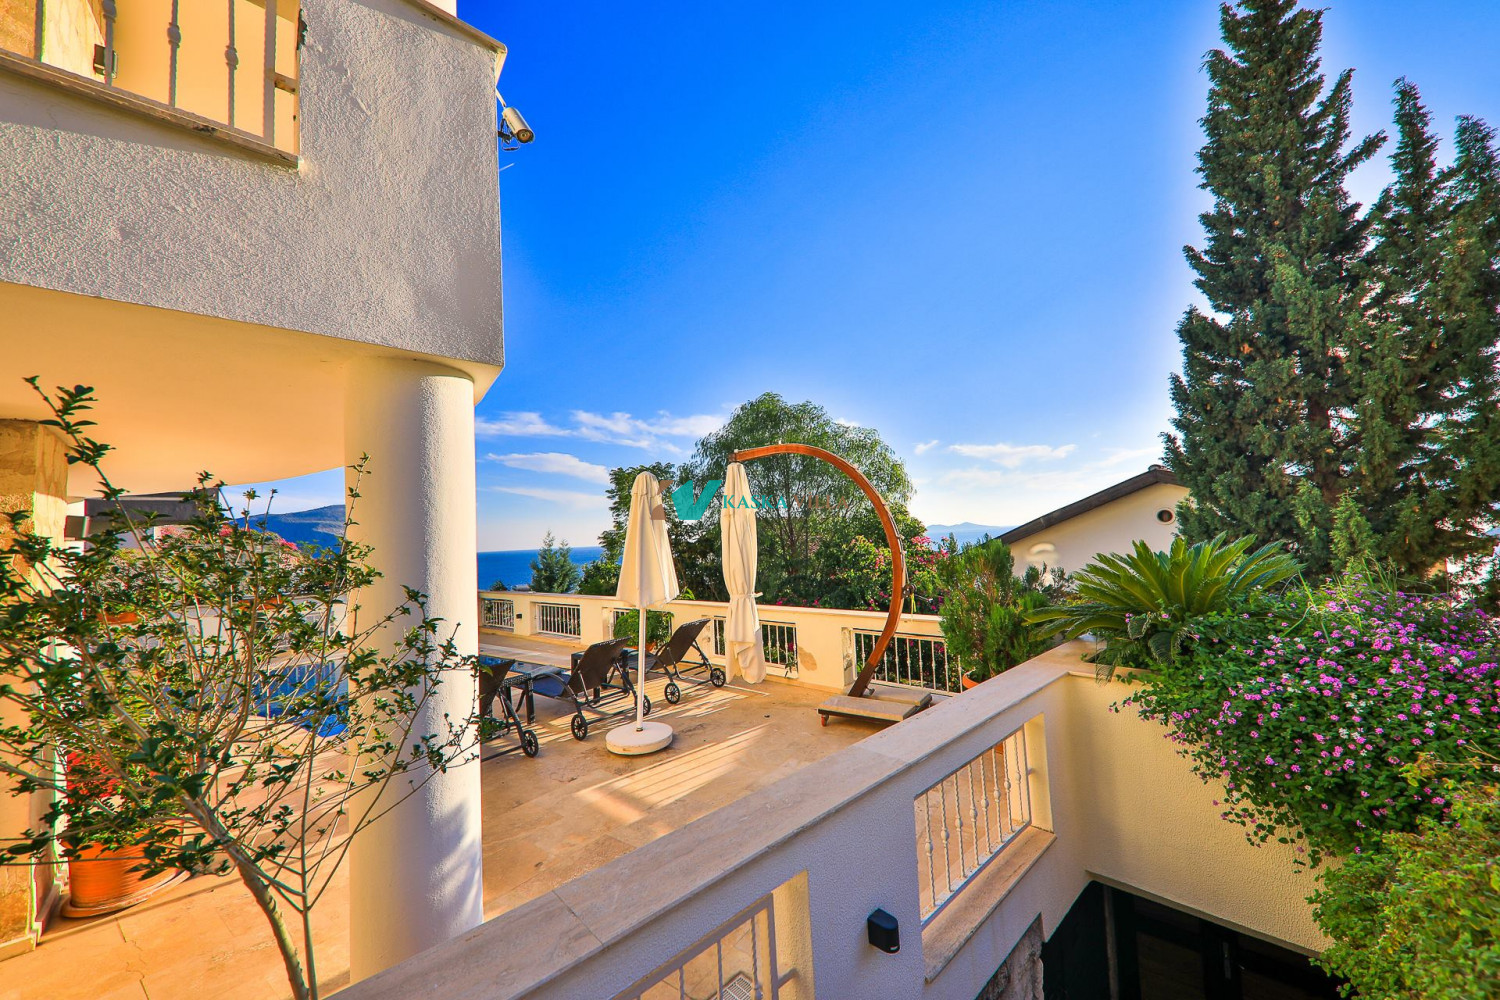 Villa Holiday from a Woman's Eye